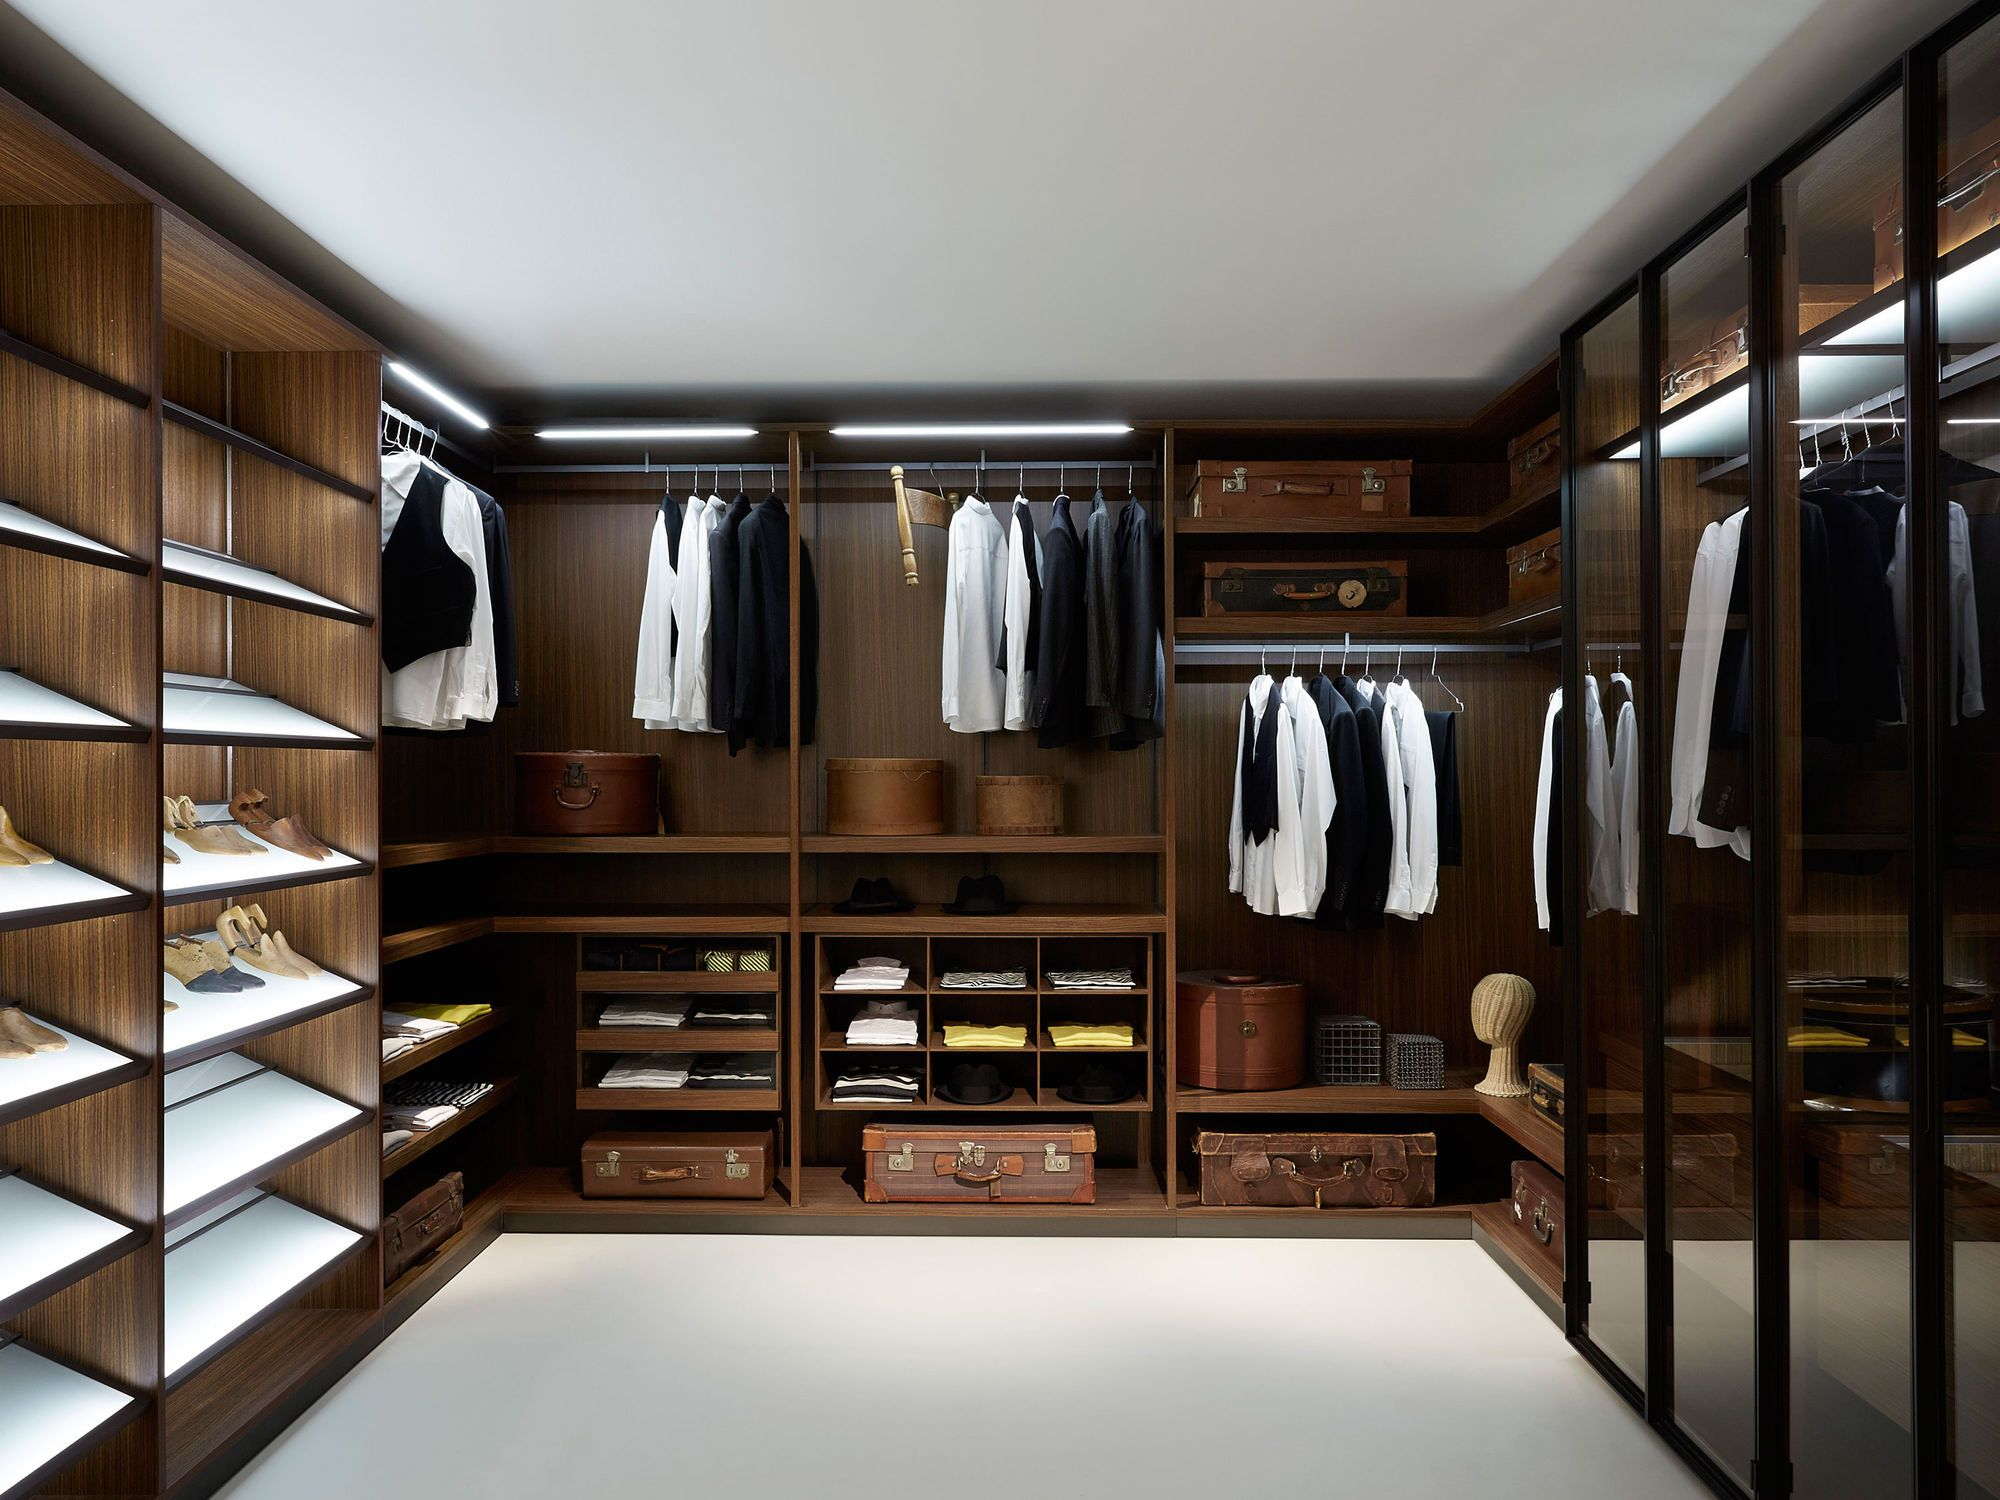 Walk In Closet Design Ideas gallery of image of functional closet storage solutions bedroom closet with closet ideas small spaces In This Post We Have 21 Best Traditional Storage Closets Design Ideas For Your Beautiful